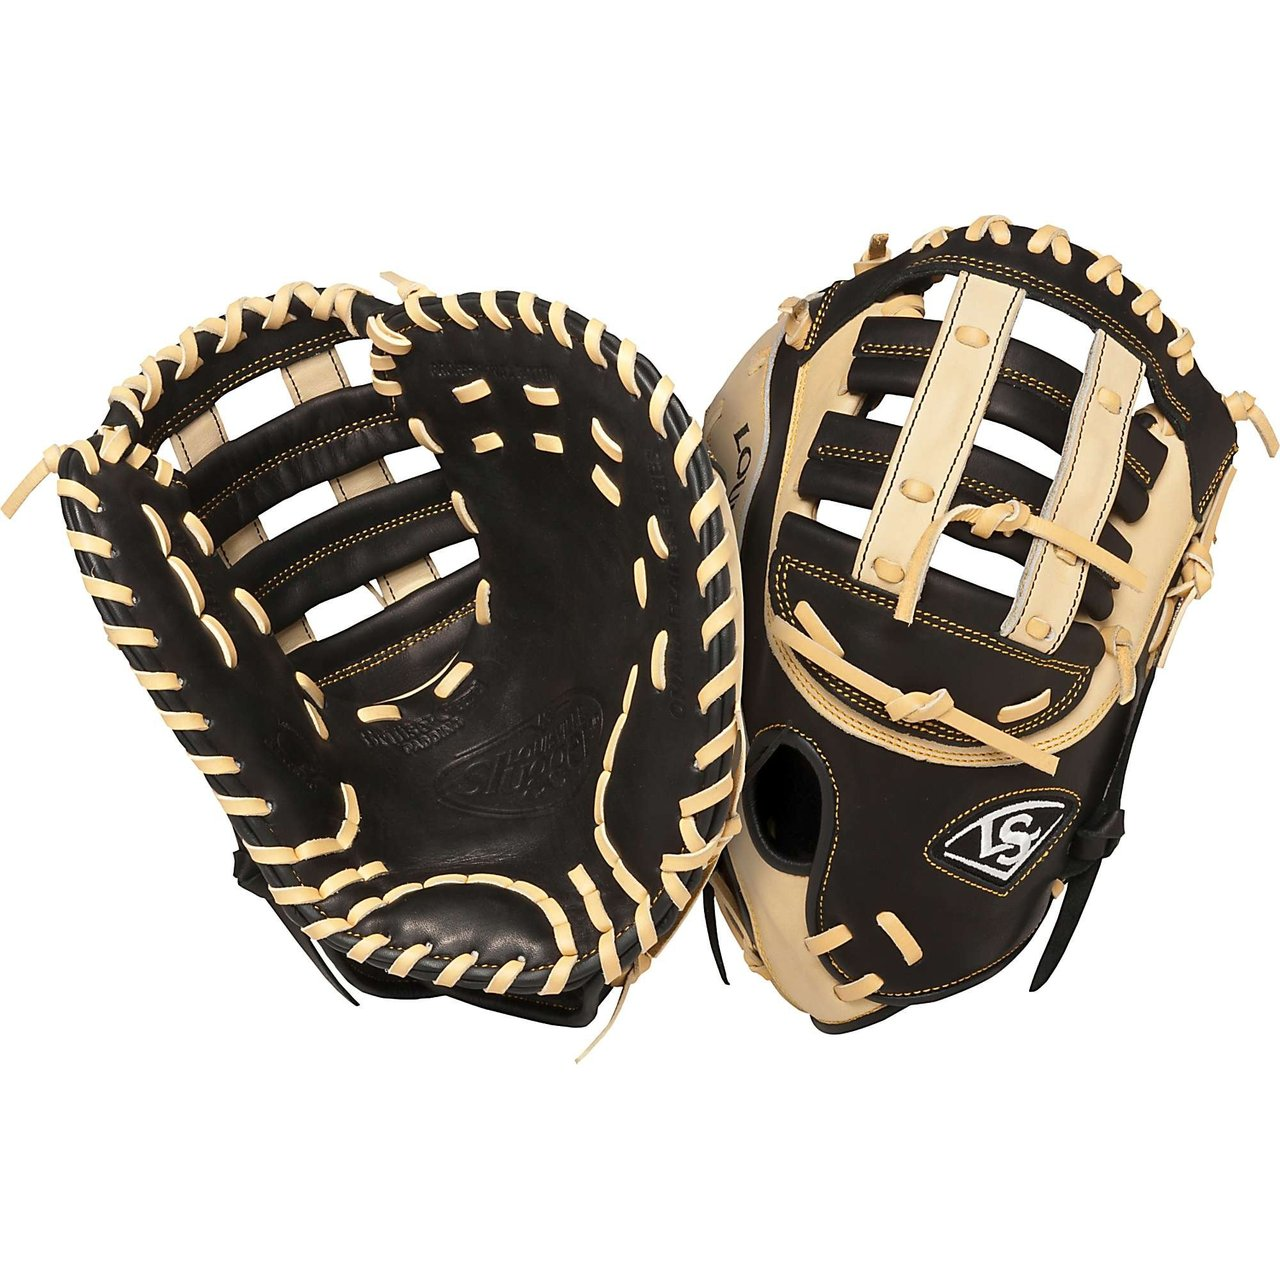 louisville-slugger-omaha-flare-13-inch-first-base-mitt-right-handed-throw FGOF14-BKFBM-Right Handed Throw Louisville 044277007126 The Louisville Slugger Omaha Flare series baseball glove combines Louisville Slugger\x